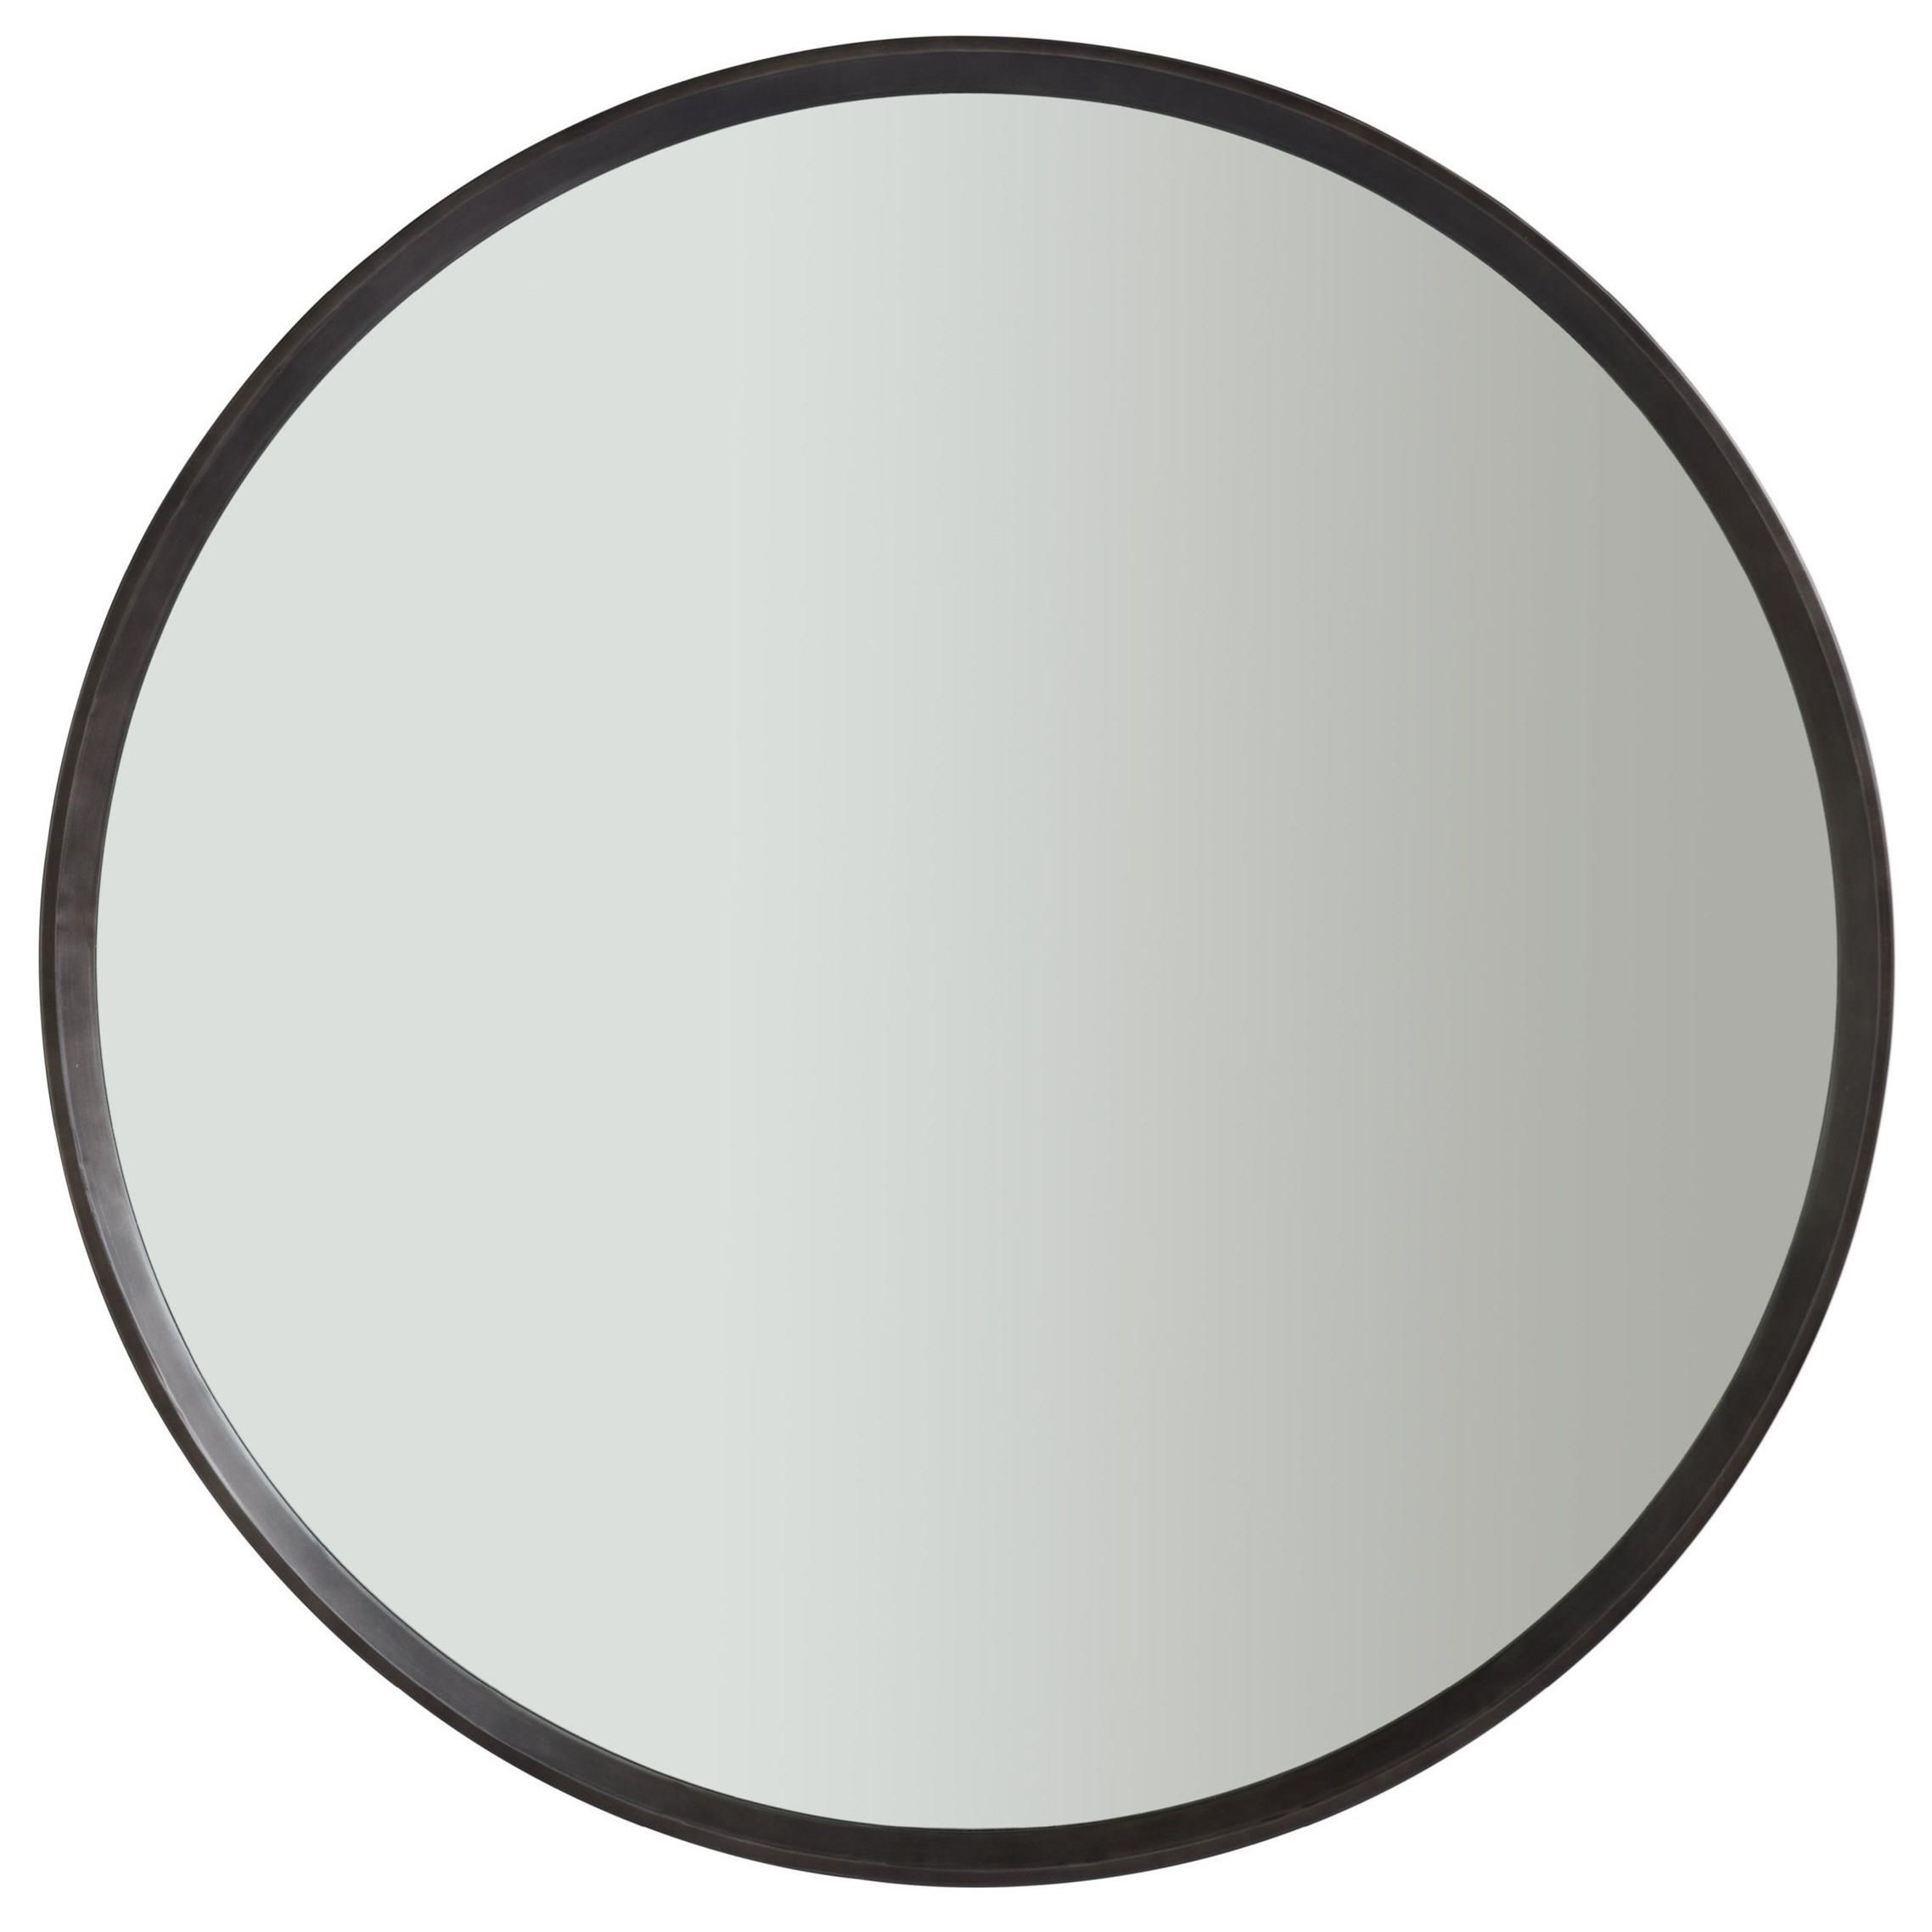 Nina Magon 941 Cecily Round Mirror by Universal at Baer's Furniture